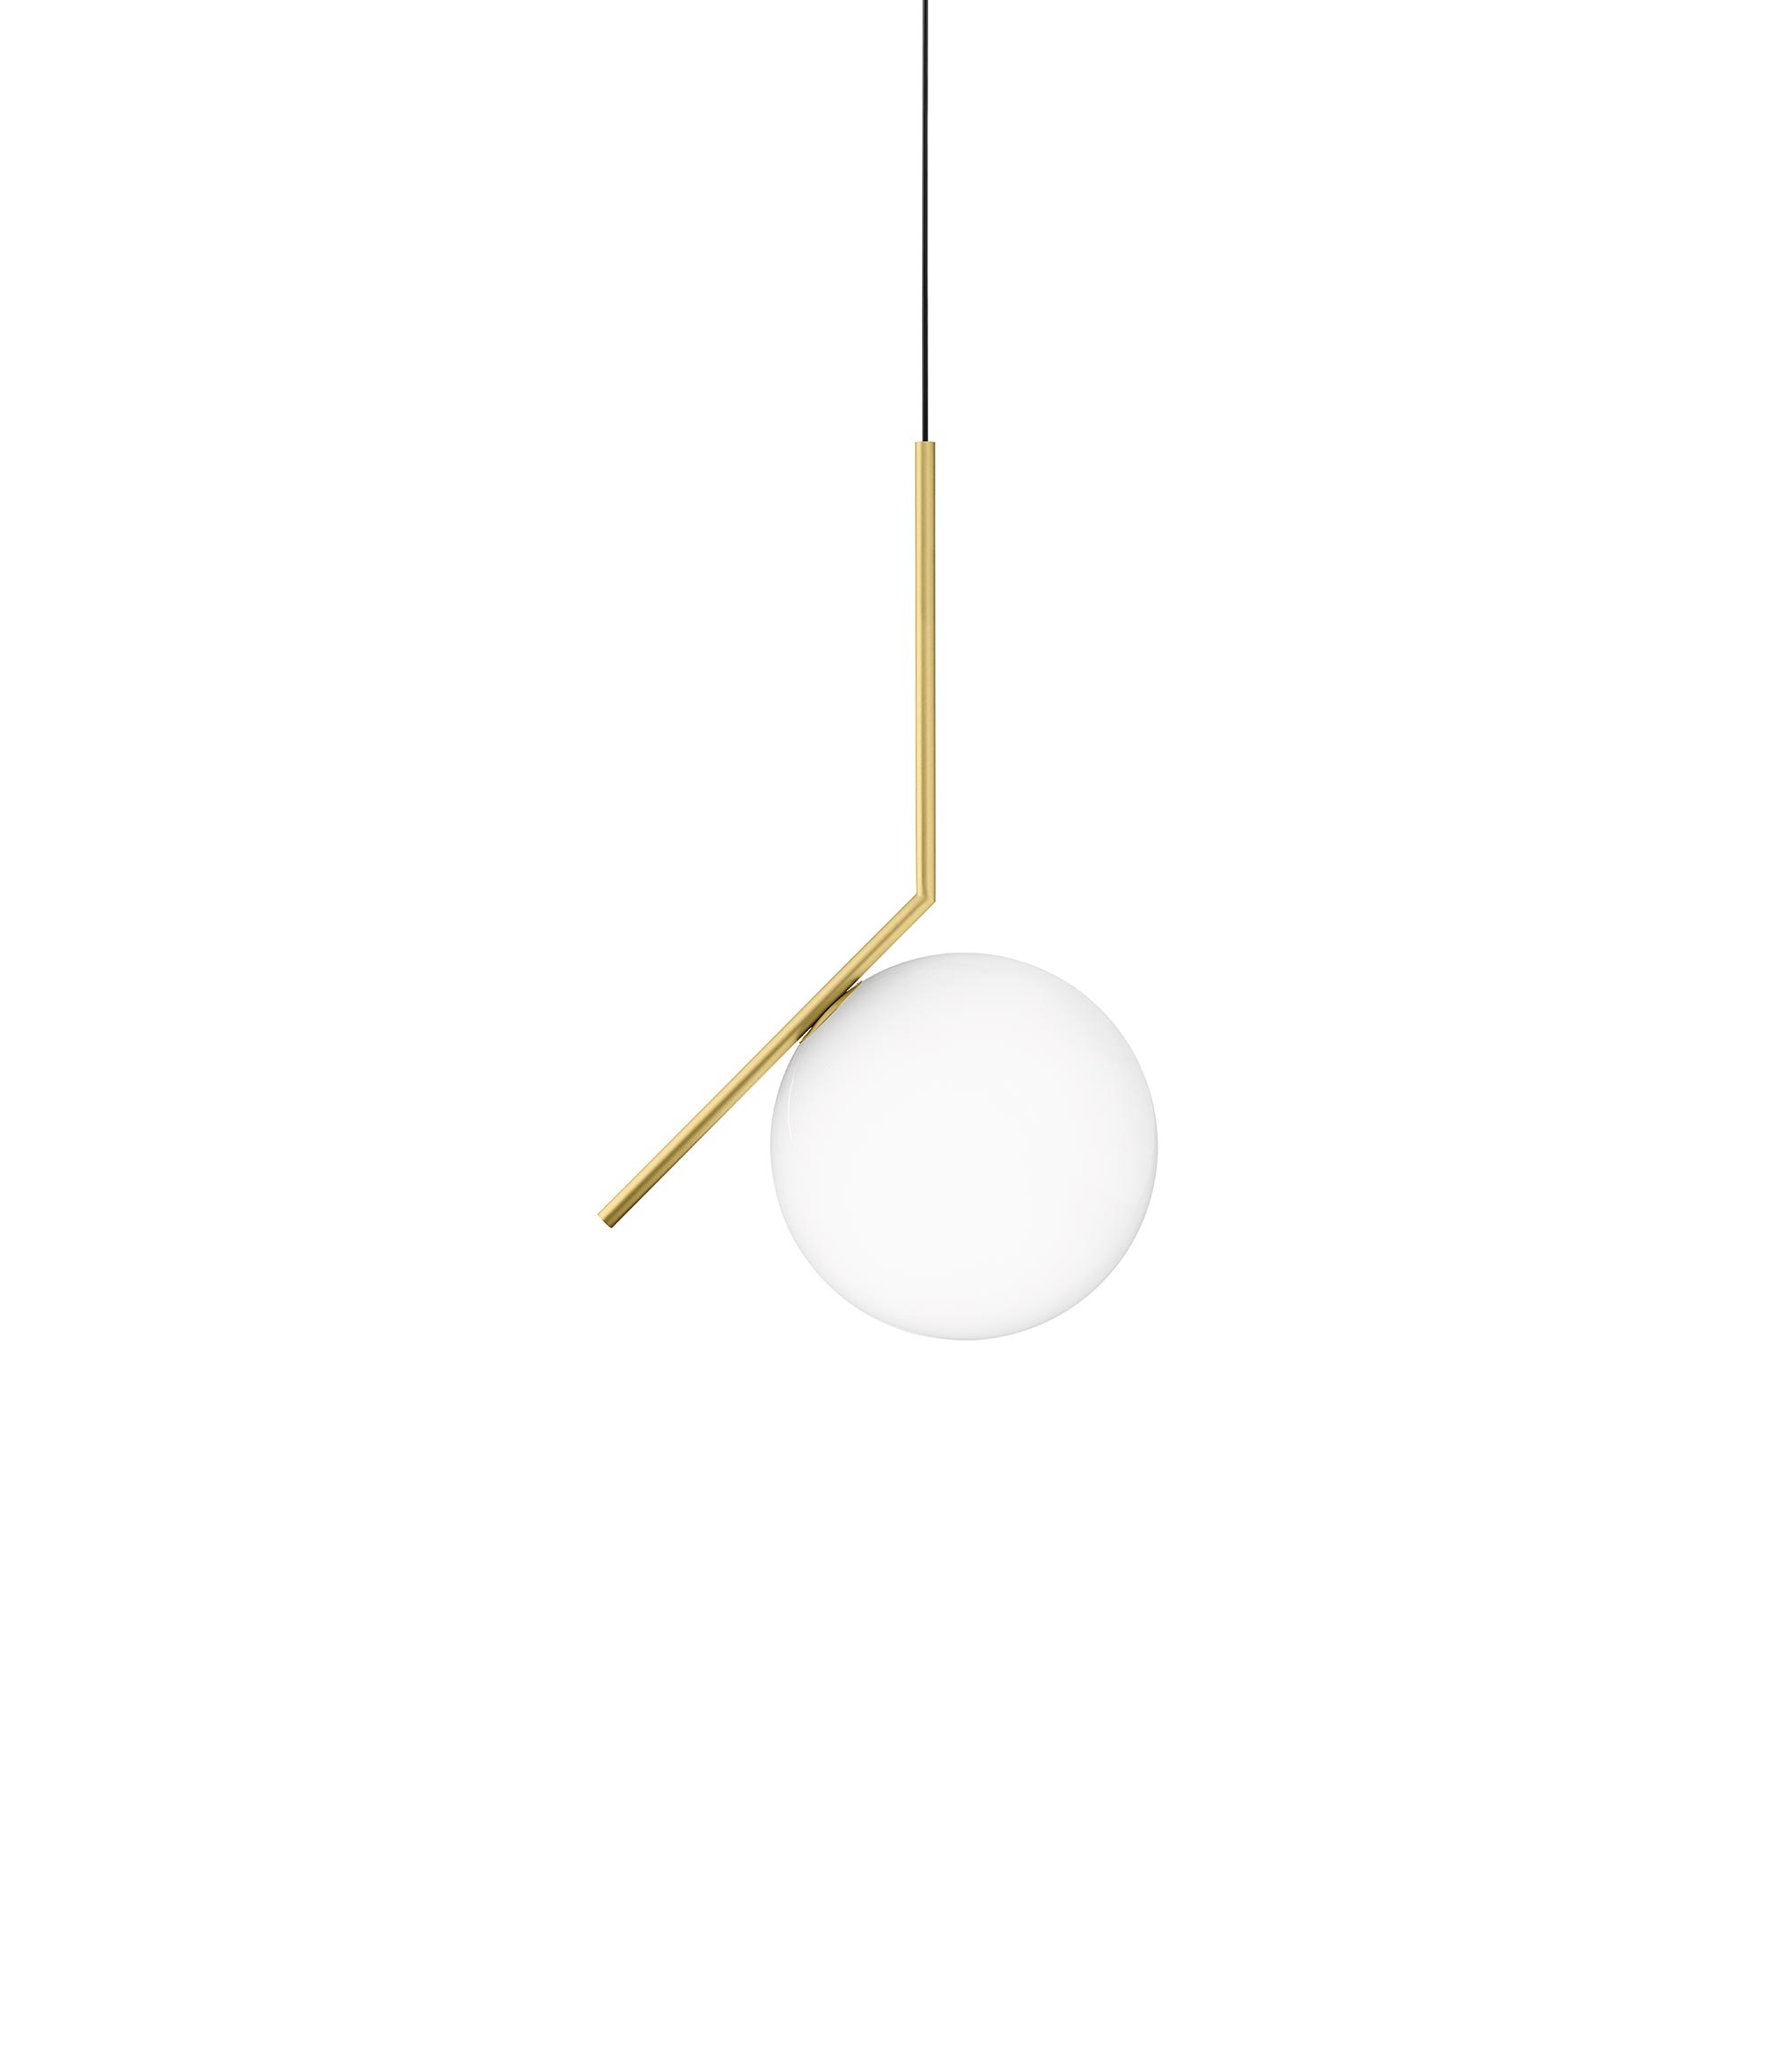 Ic suspension 2 anastassiades flos F3176059 product still life big 2